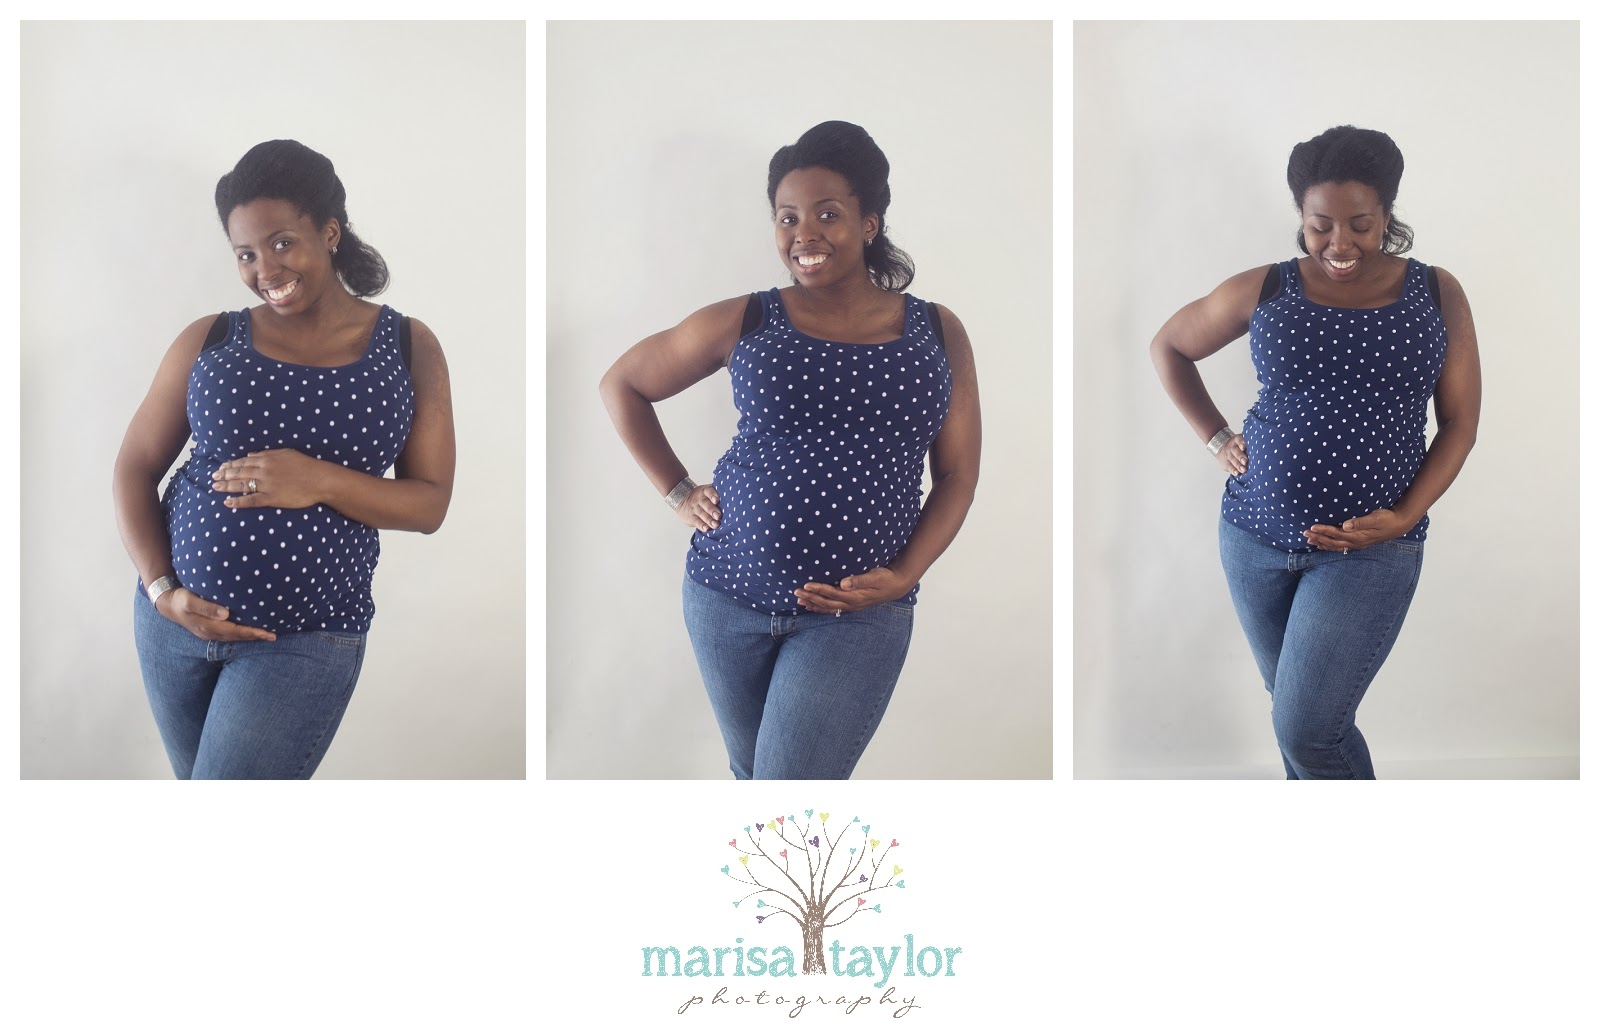 marisa taylor photography, maternity session, delaware maternity photographer, delaware family photographer